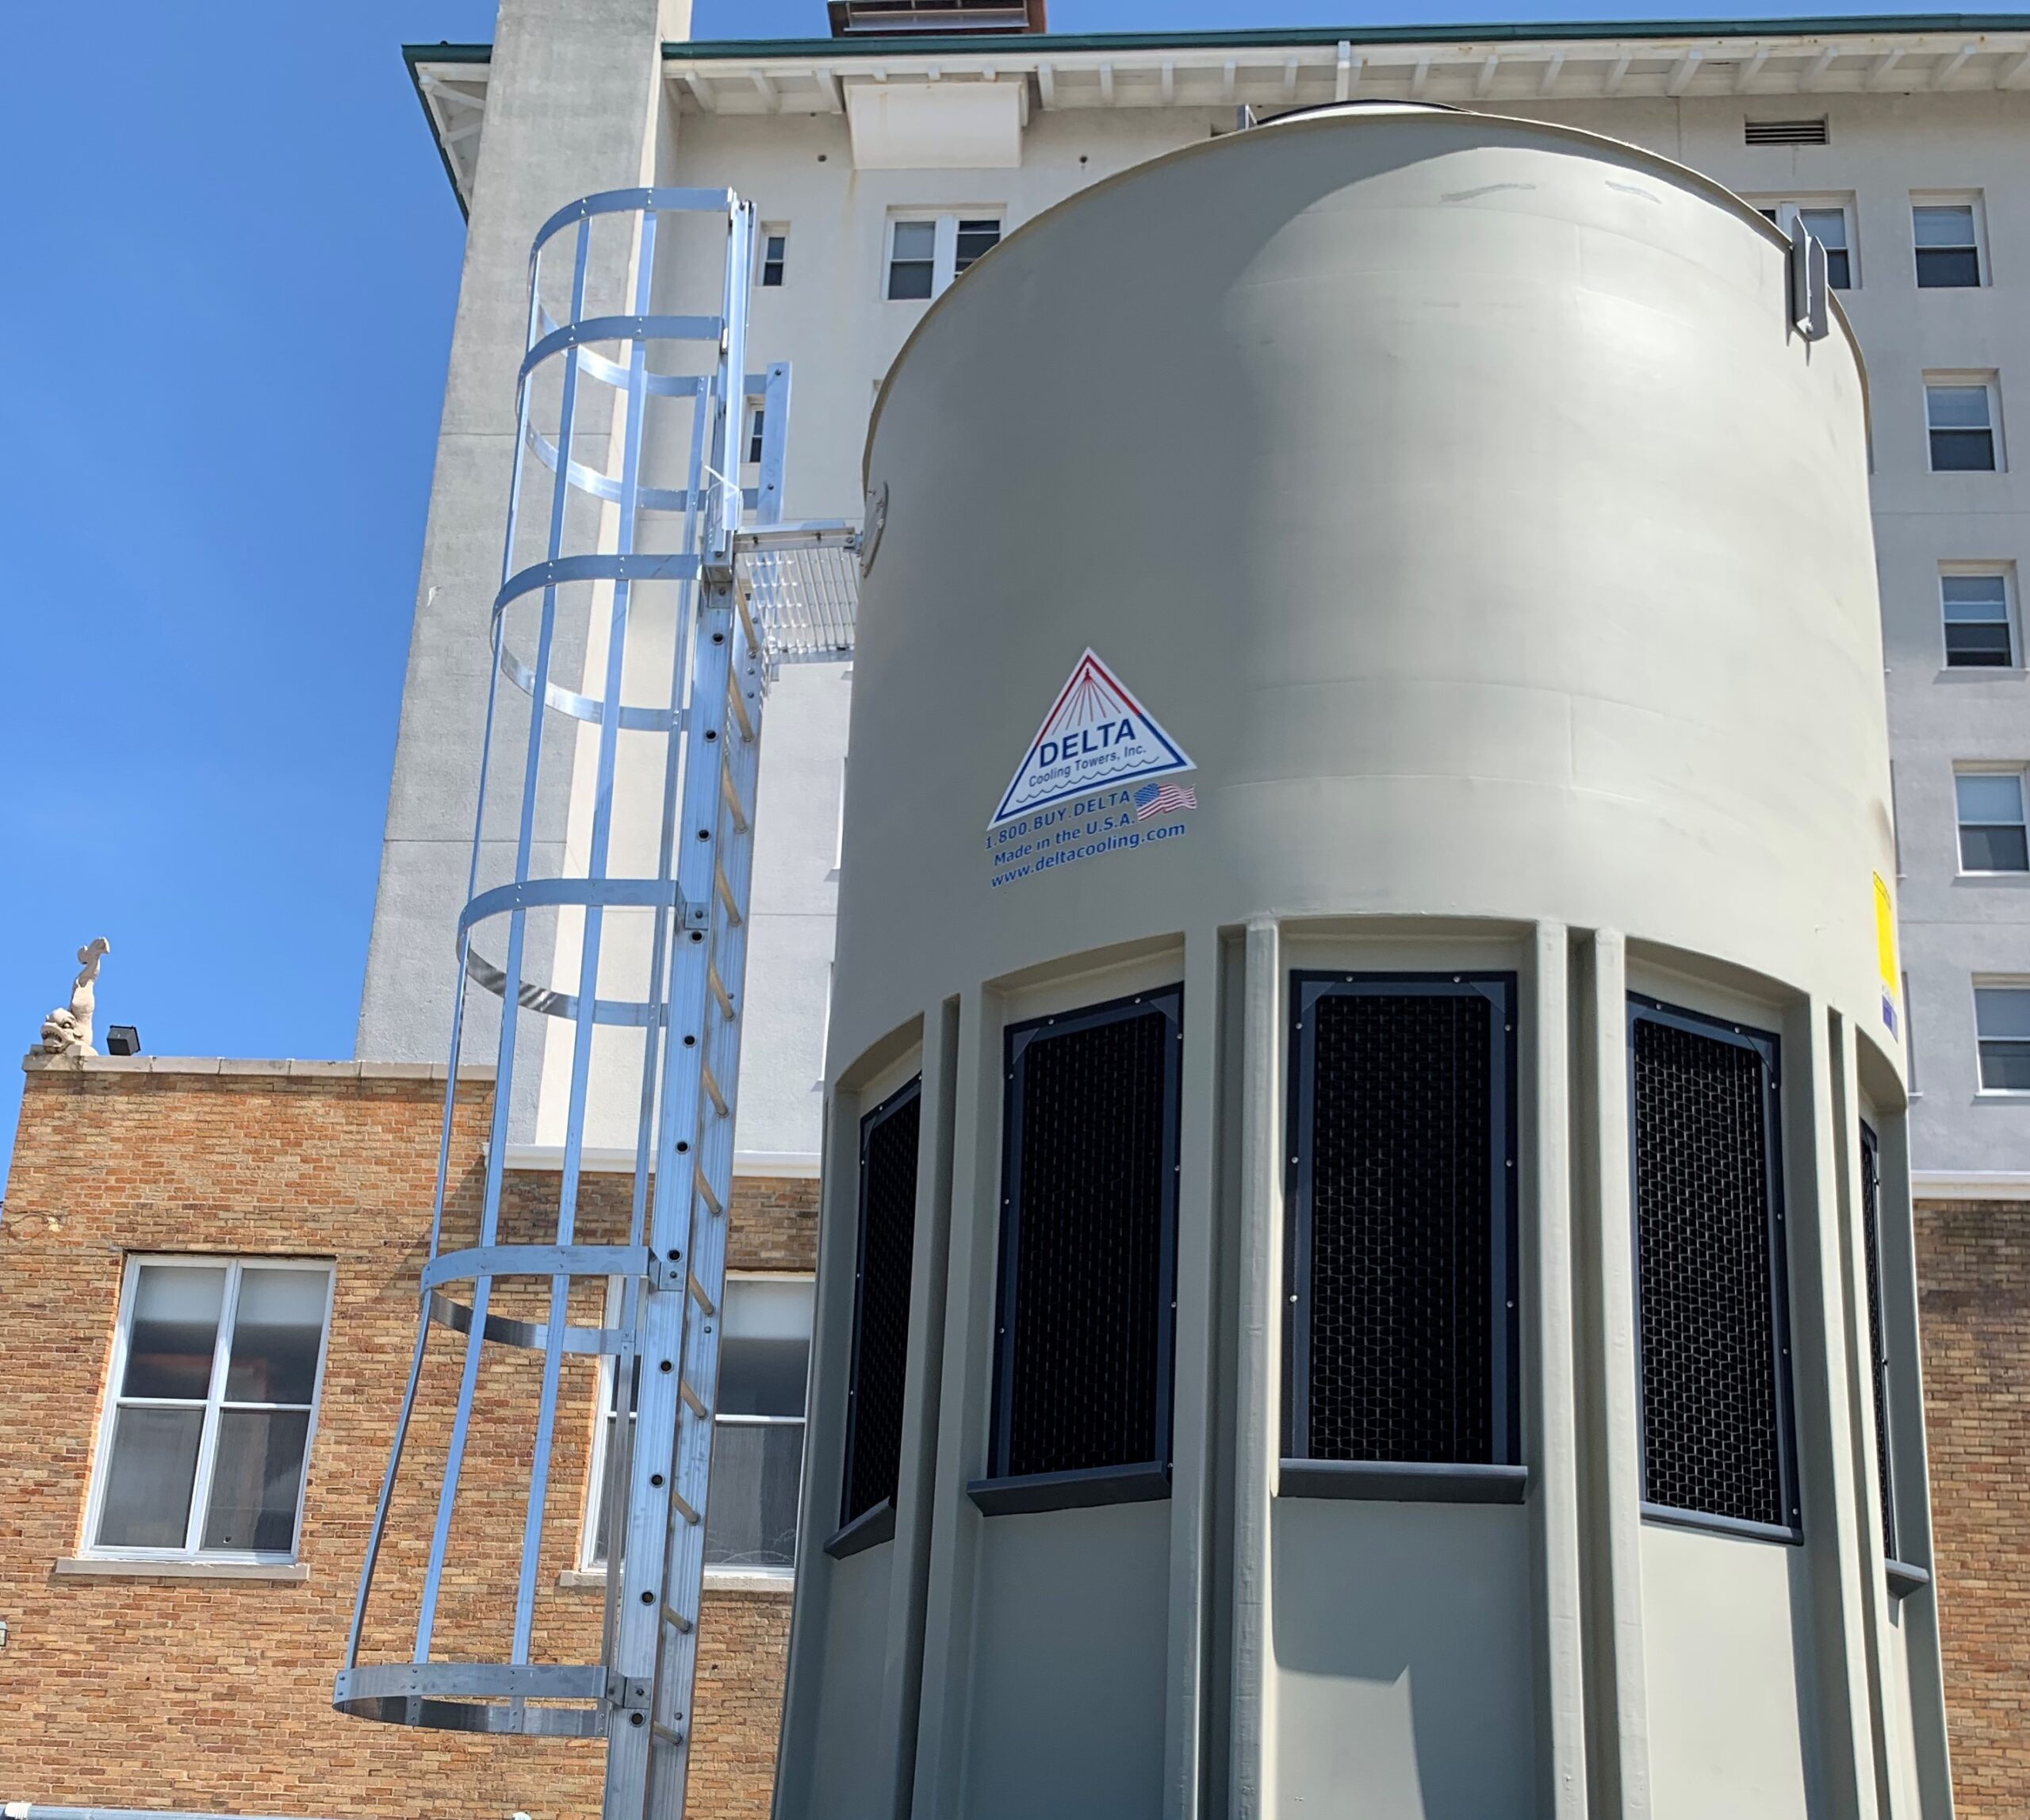 5 Reasons to Consider Replacing a Metal Cooling Tower